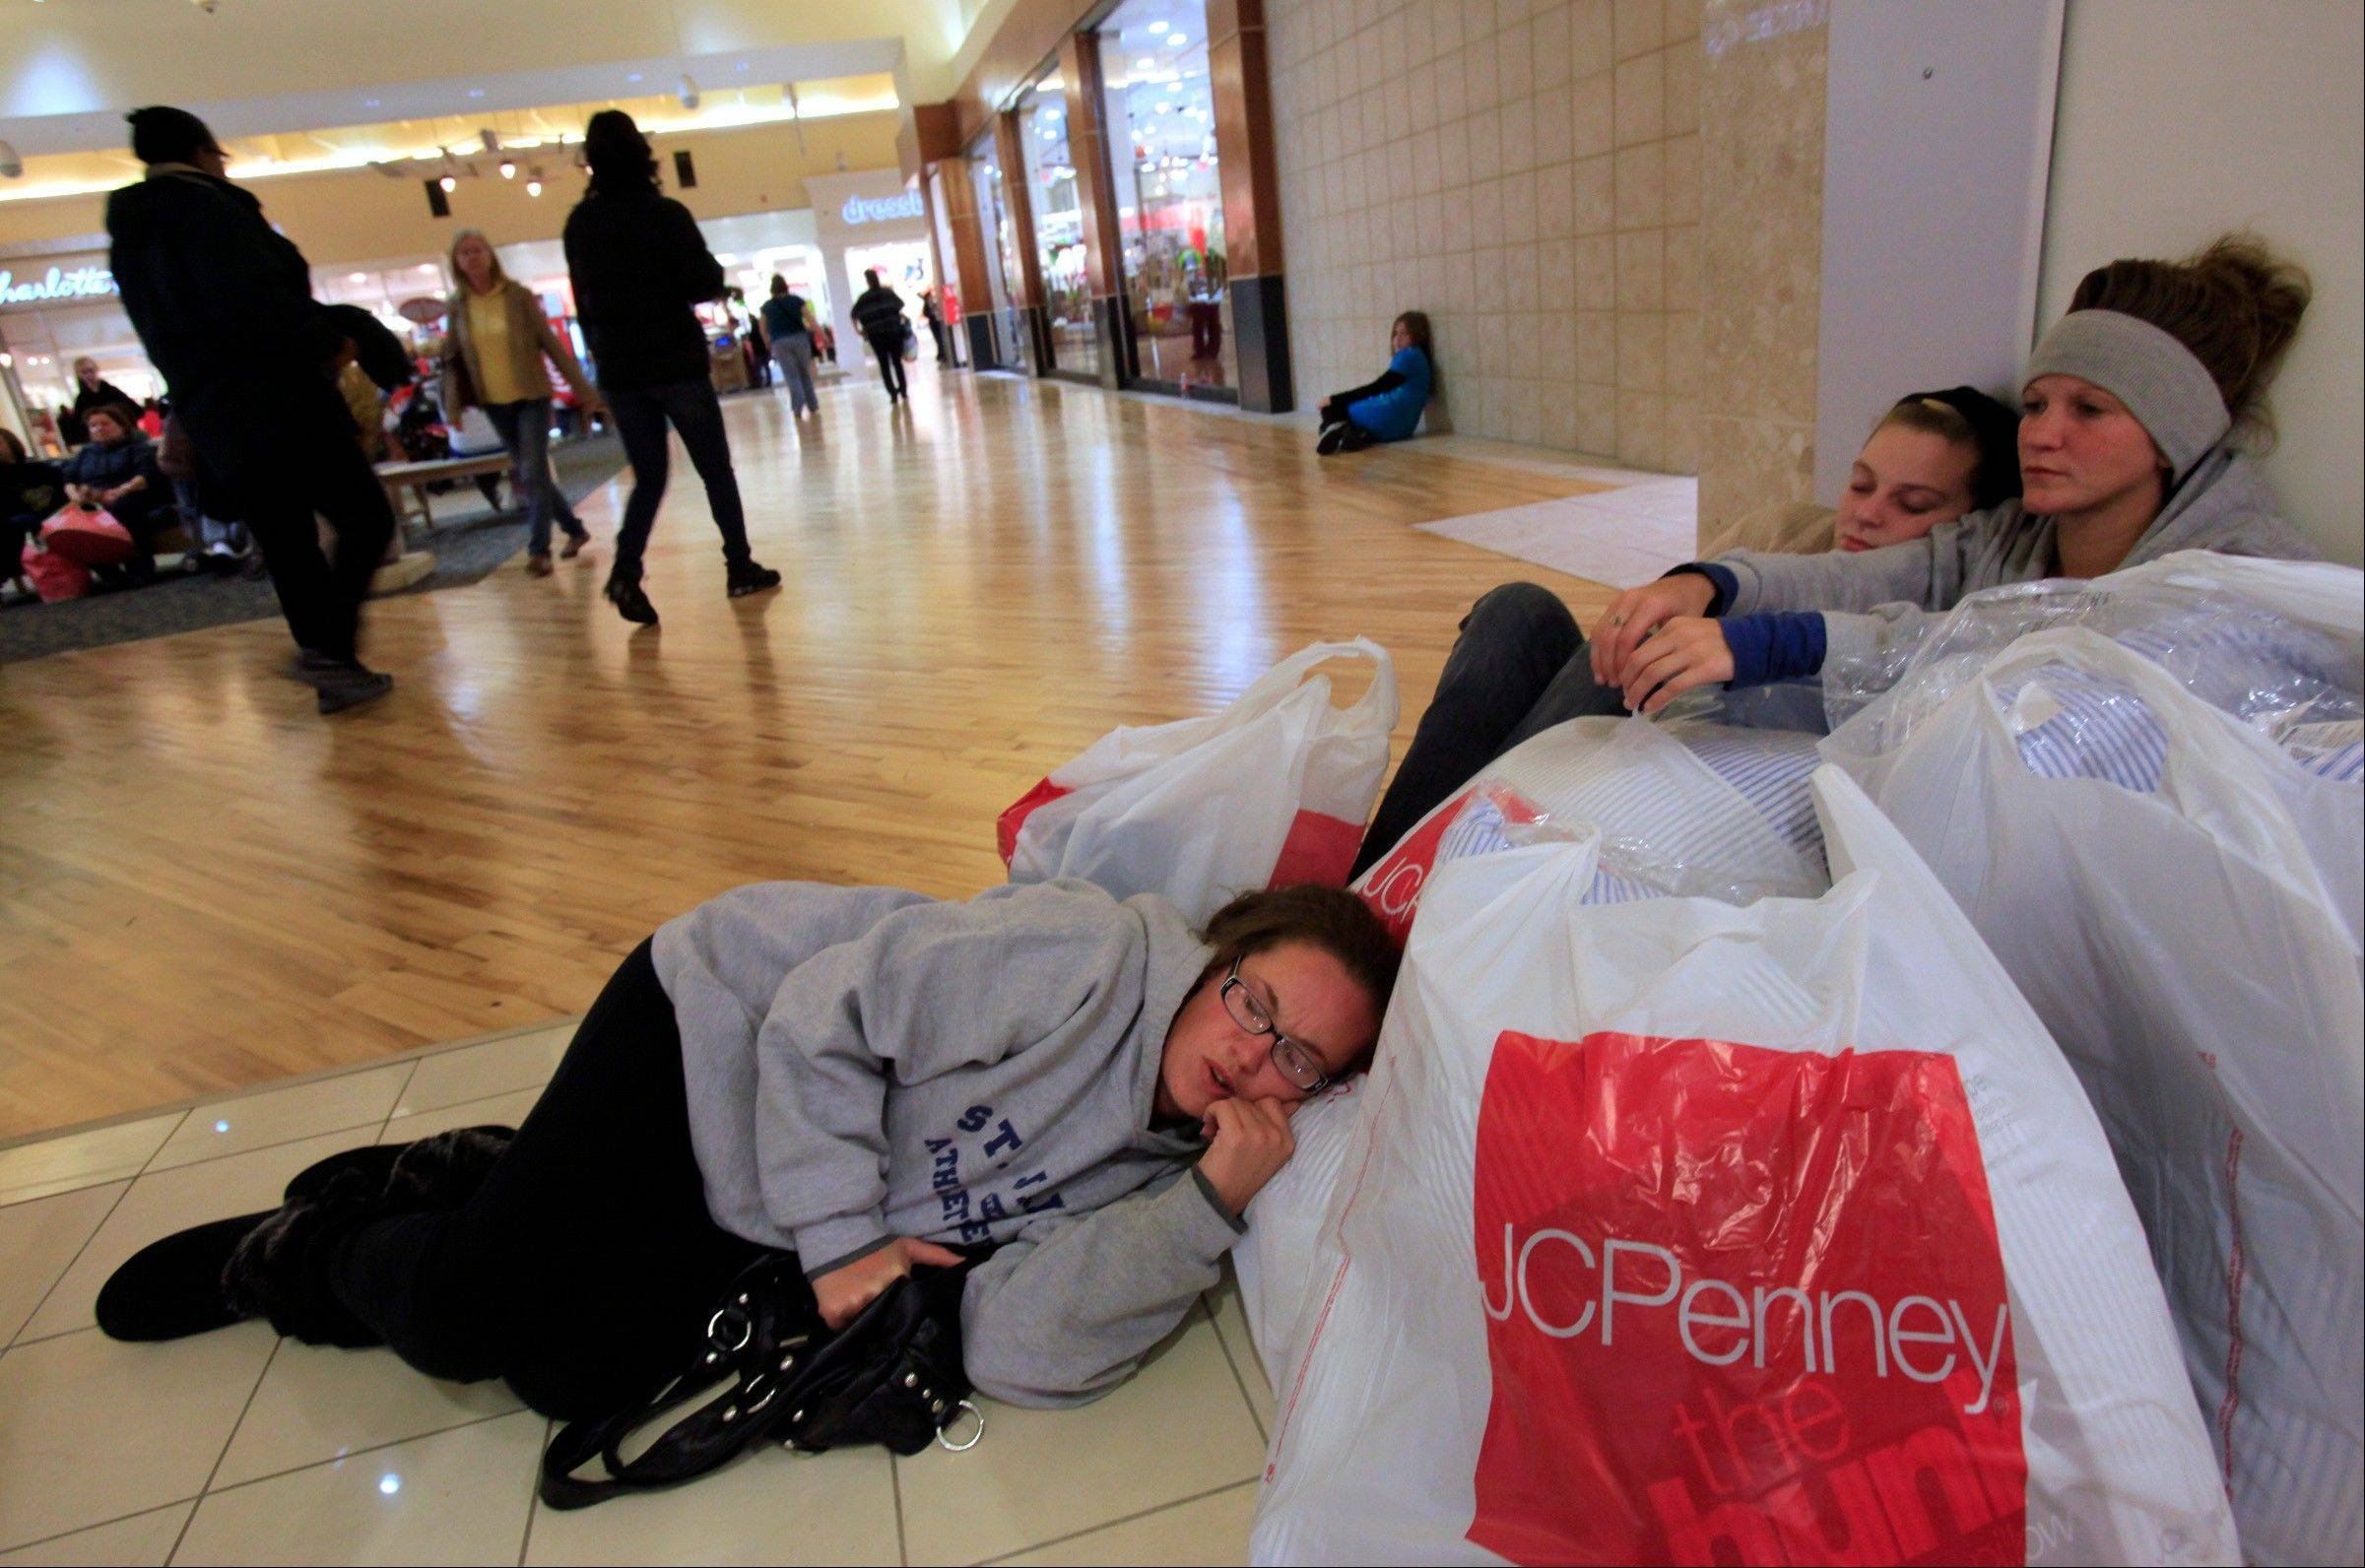 Jessica Wood, right, and fellow shoppers Tami Formont, left, and Courtney Owens wait for others in their group outside JC Penney during Black Friday sales, Friday, Nov. 23, 2012 at Coastal Grand Mall in Myrtle Beach, S.C.